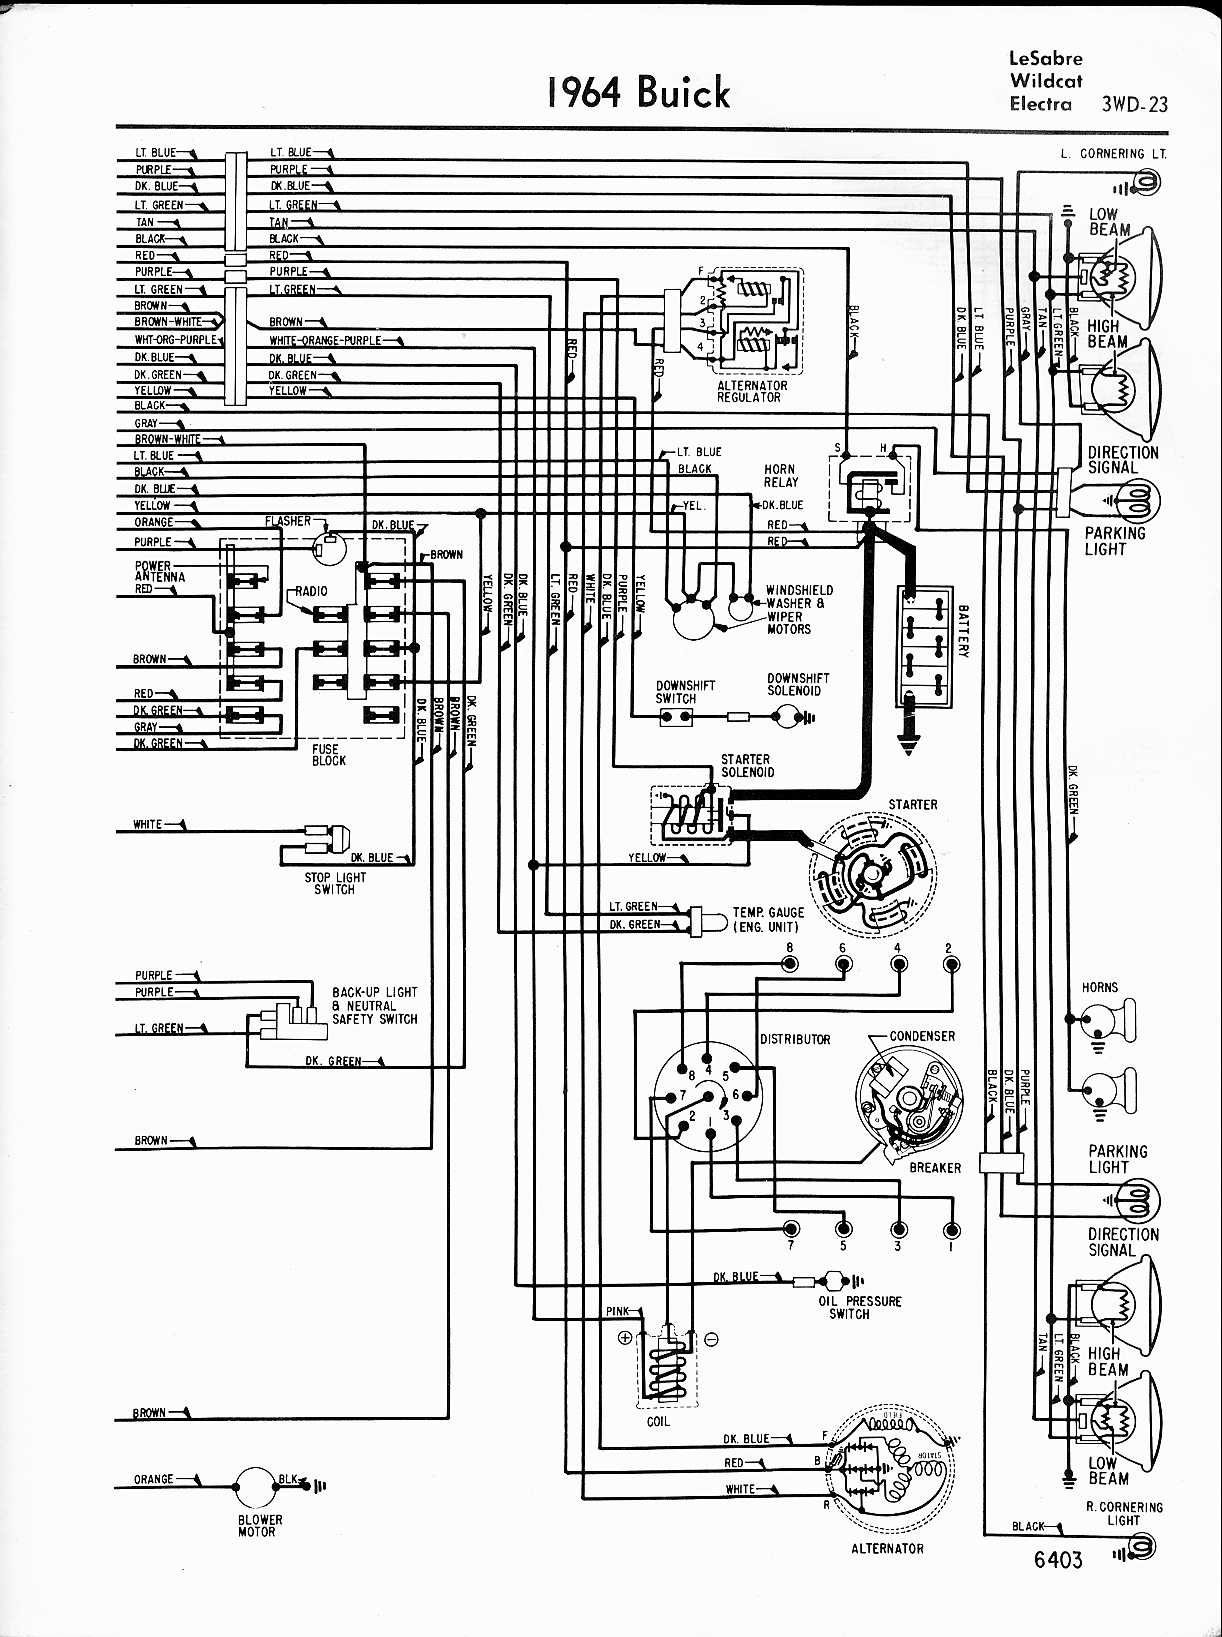 1990 dodge spirit wiring diagram wiring diagram schematics95 dodge spirit  fuse diagram wiring library 1996 dodge